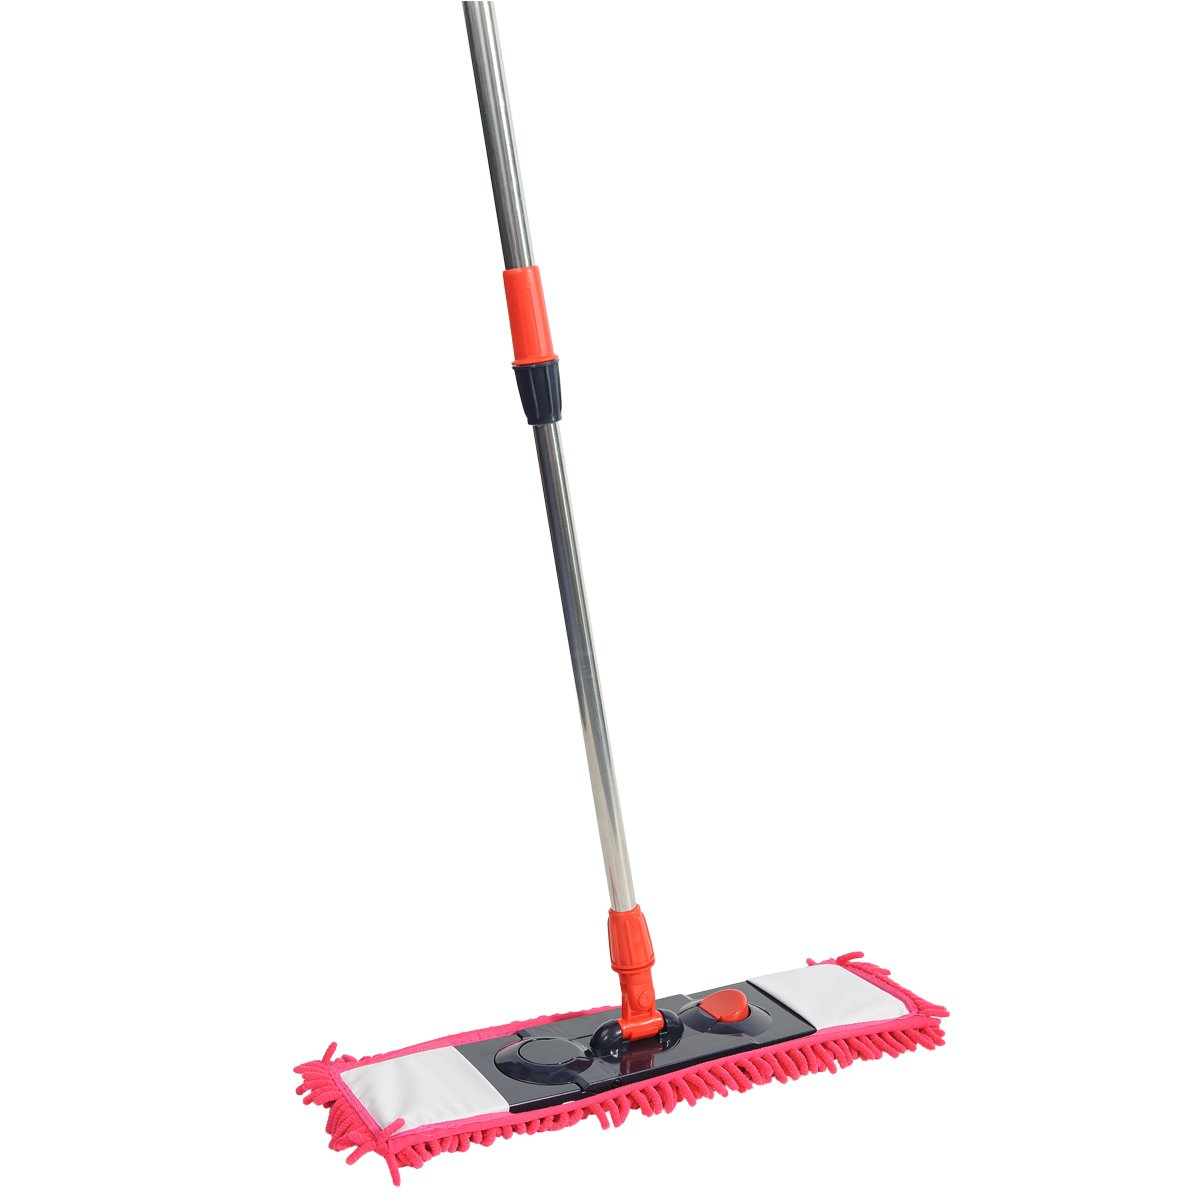 NFHOME 24'' Chenille Flip Floor Mop, Microfiber Flat Mop with Telescopic Pole Height Max 50'' for Wet and Dry Wood, House Kitchen Hardwood Ceramic Tile Floor Cleaning, Red